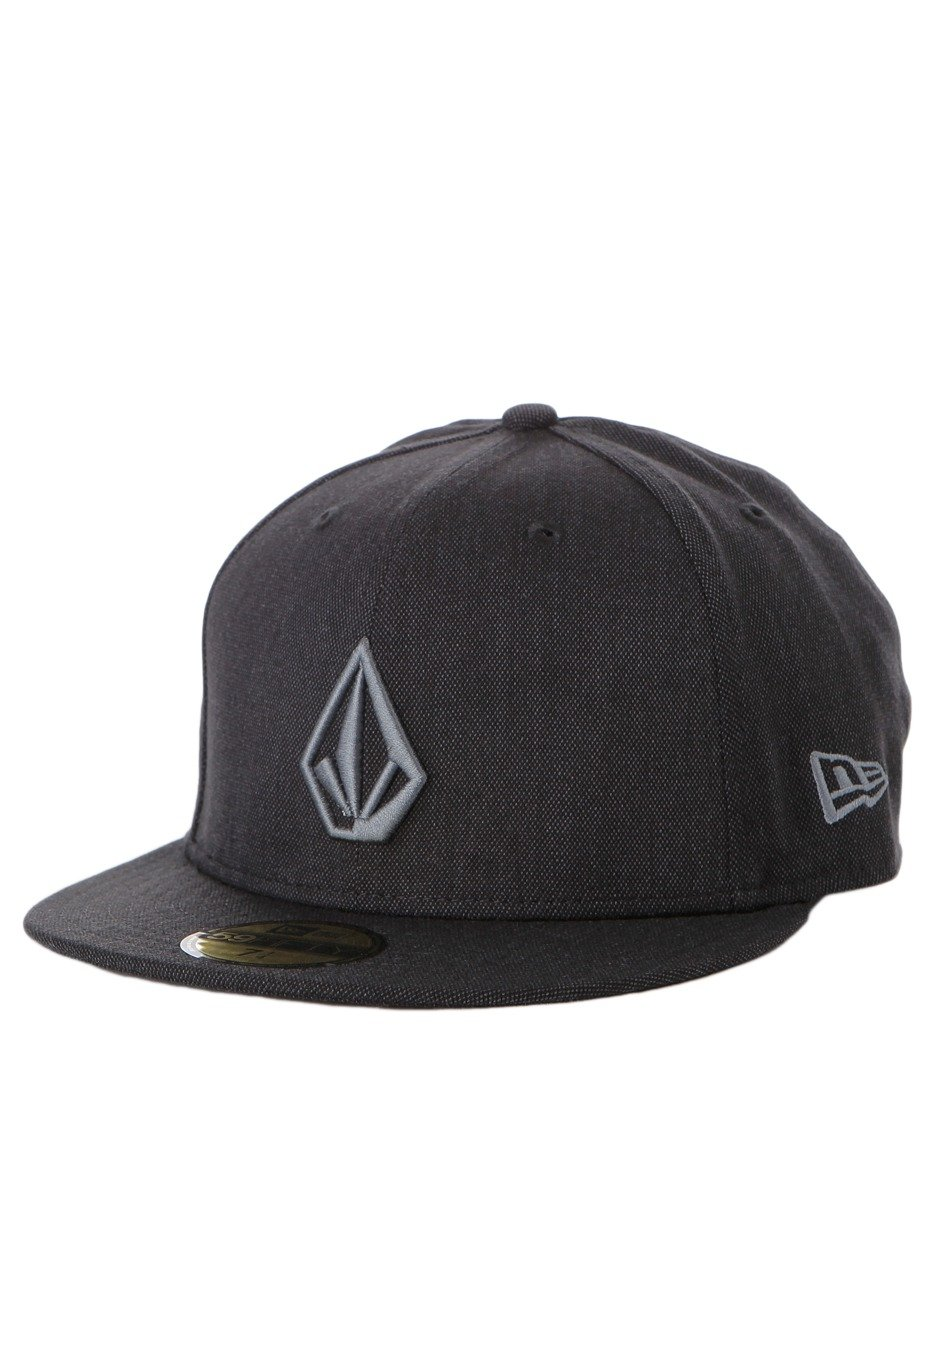 Volcom - Denim New Era - Cap - Streetwear Shop - Impericon.com Worldwide 53d418c7313